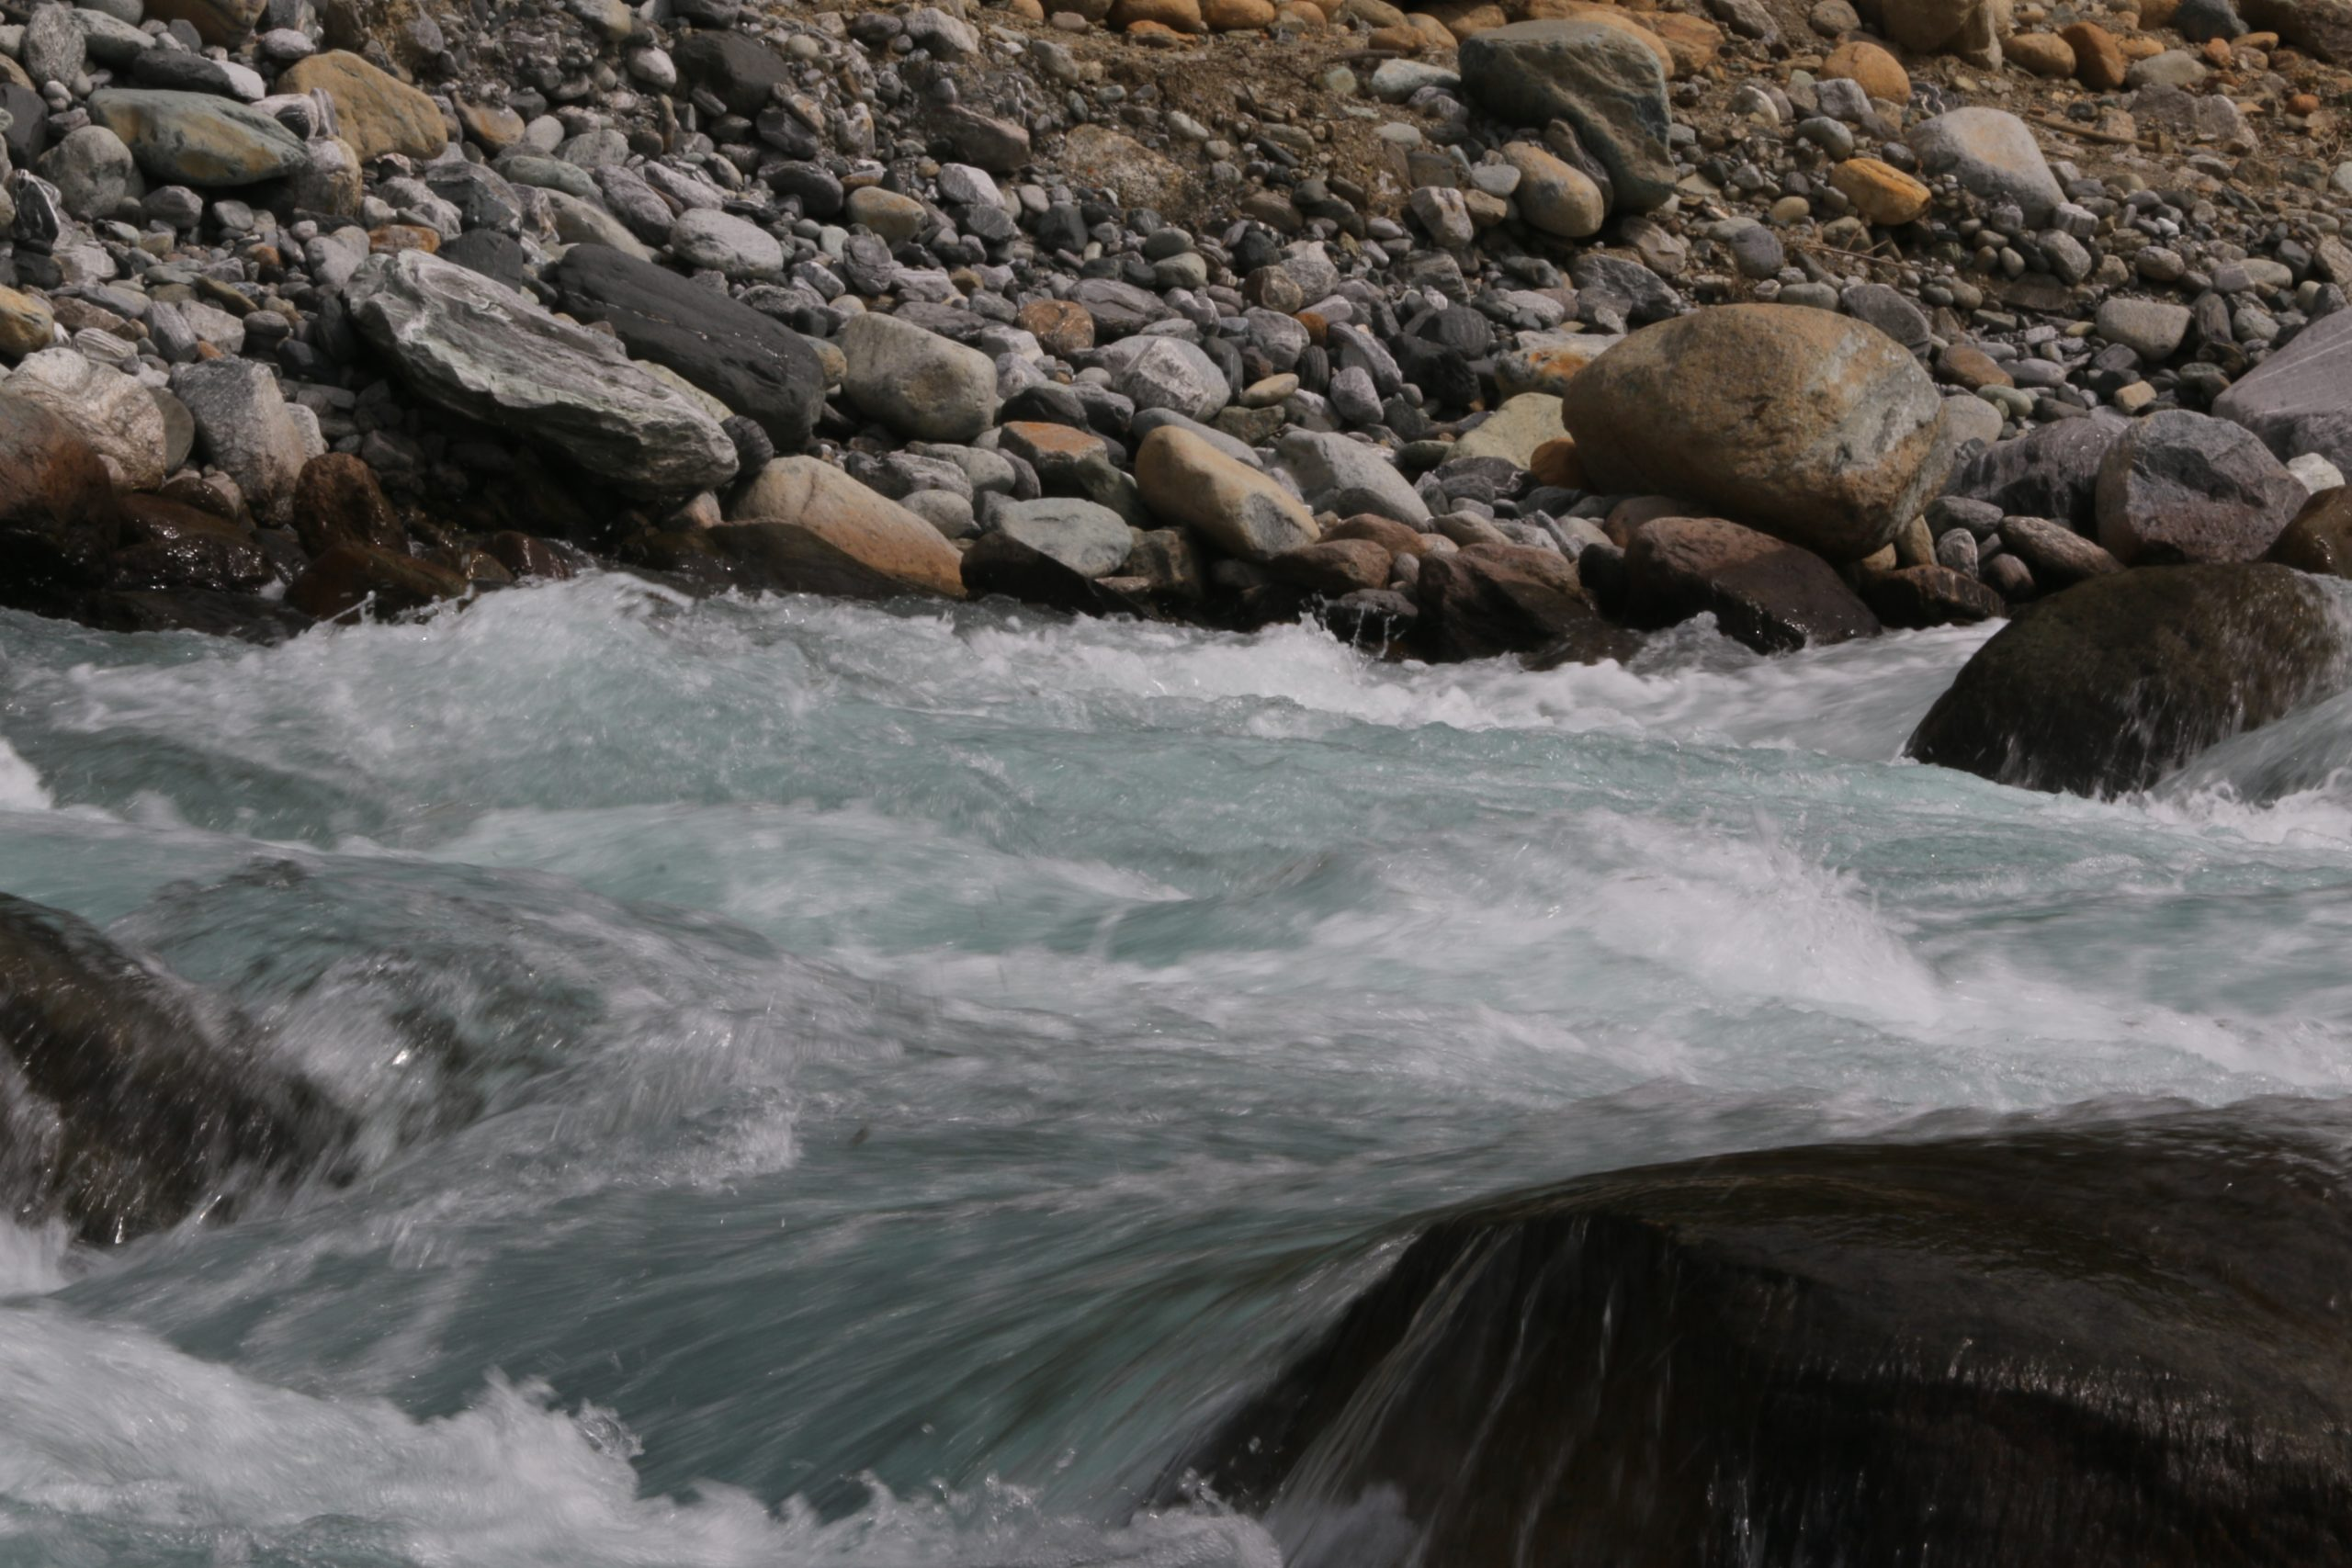 Strong rapids of a river